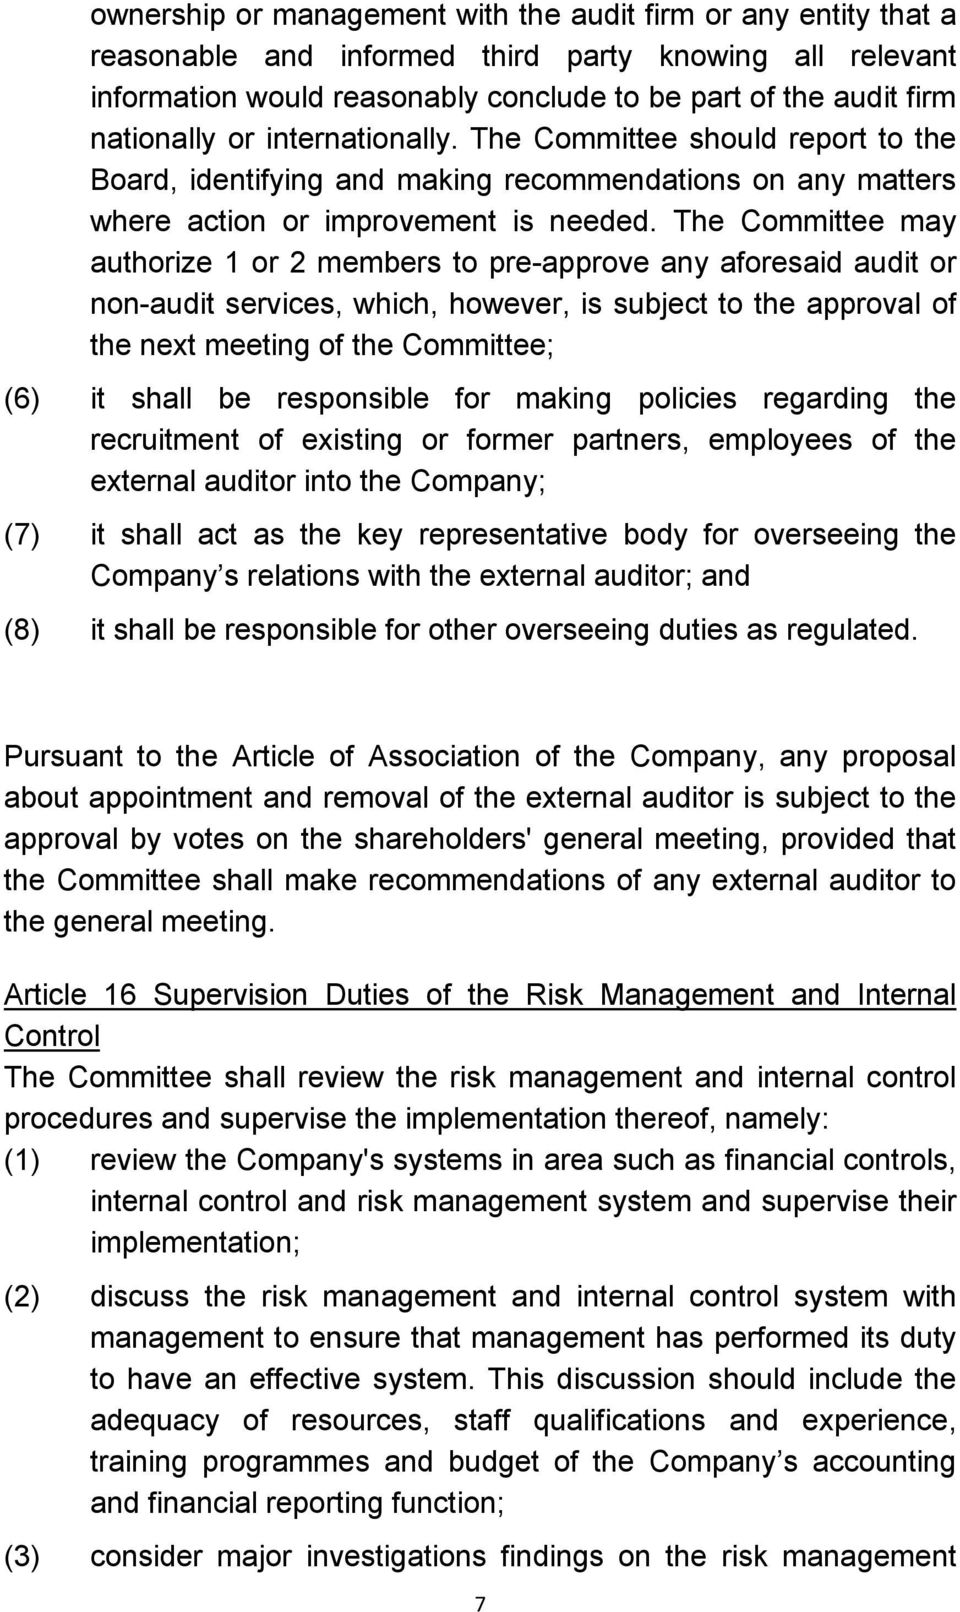 The Committee may authorize 1 or 2 members to pre-approve any aforesaid audit or non-audit services, which, however, is subject to the approval of the next meeting of the Committee; (6) it shall be